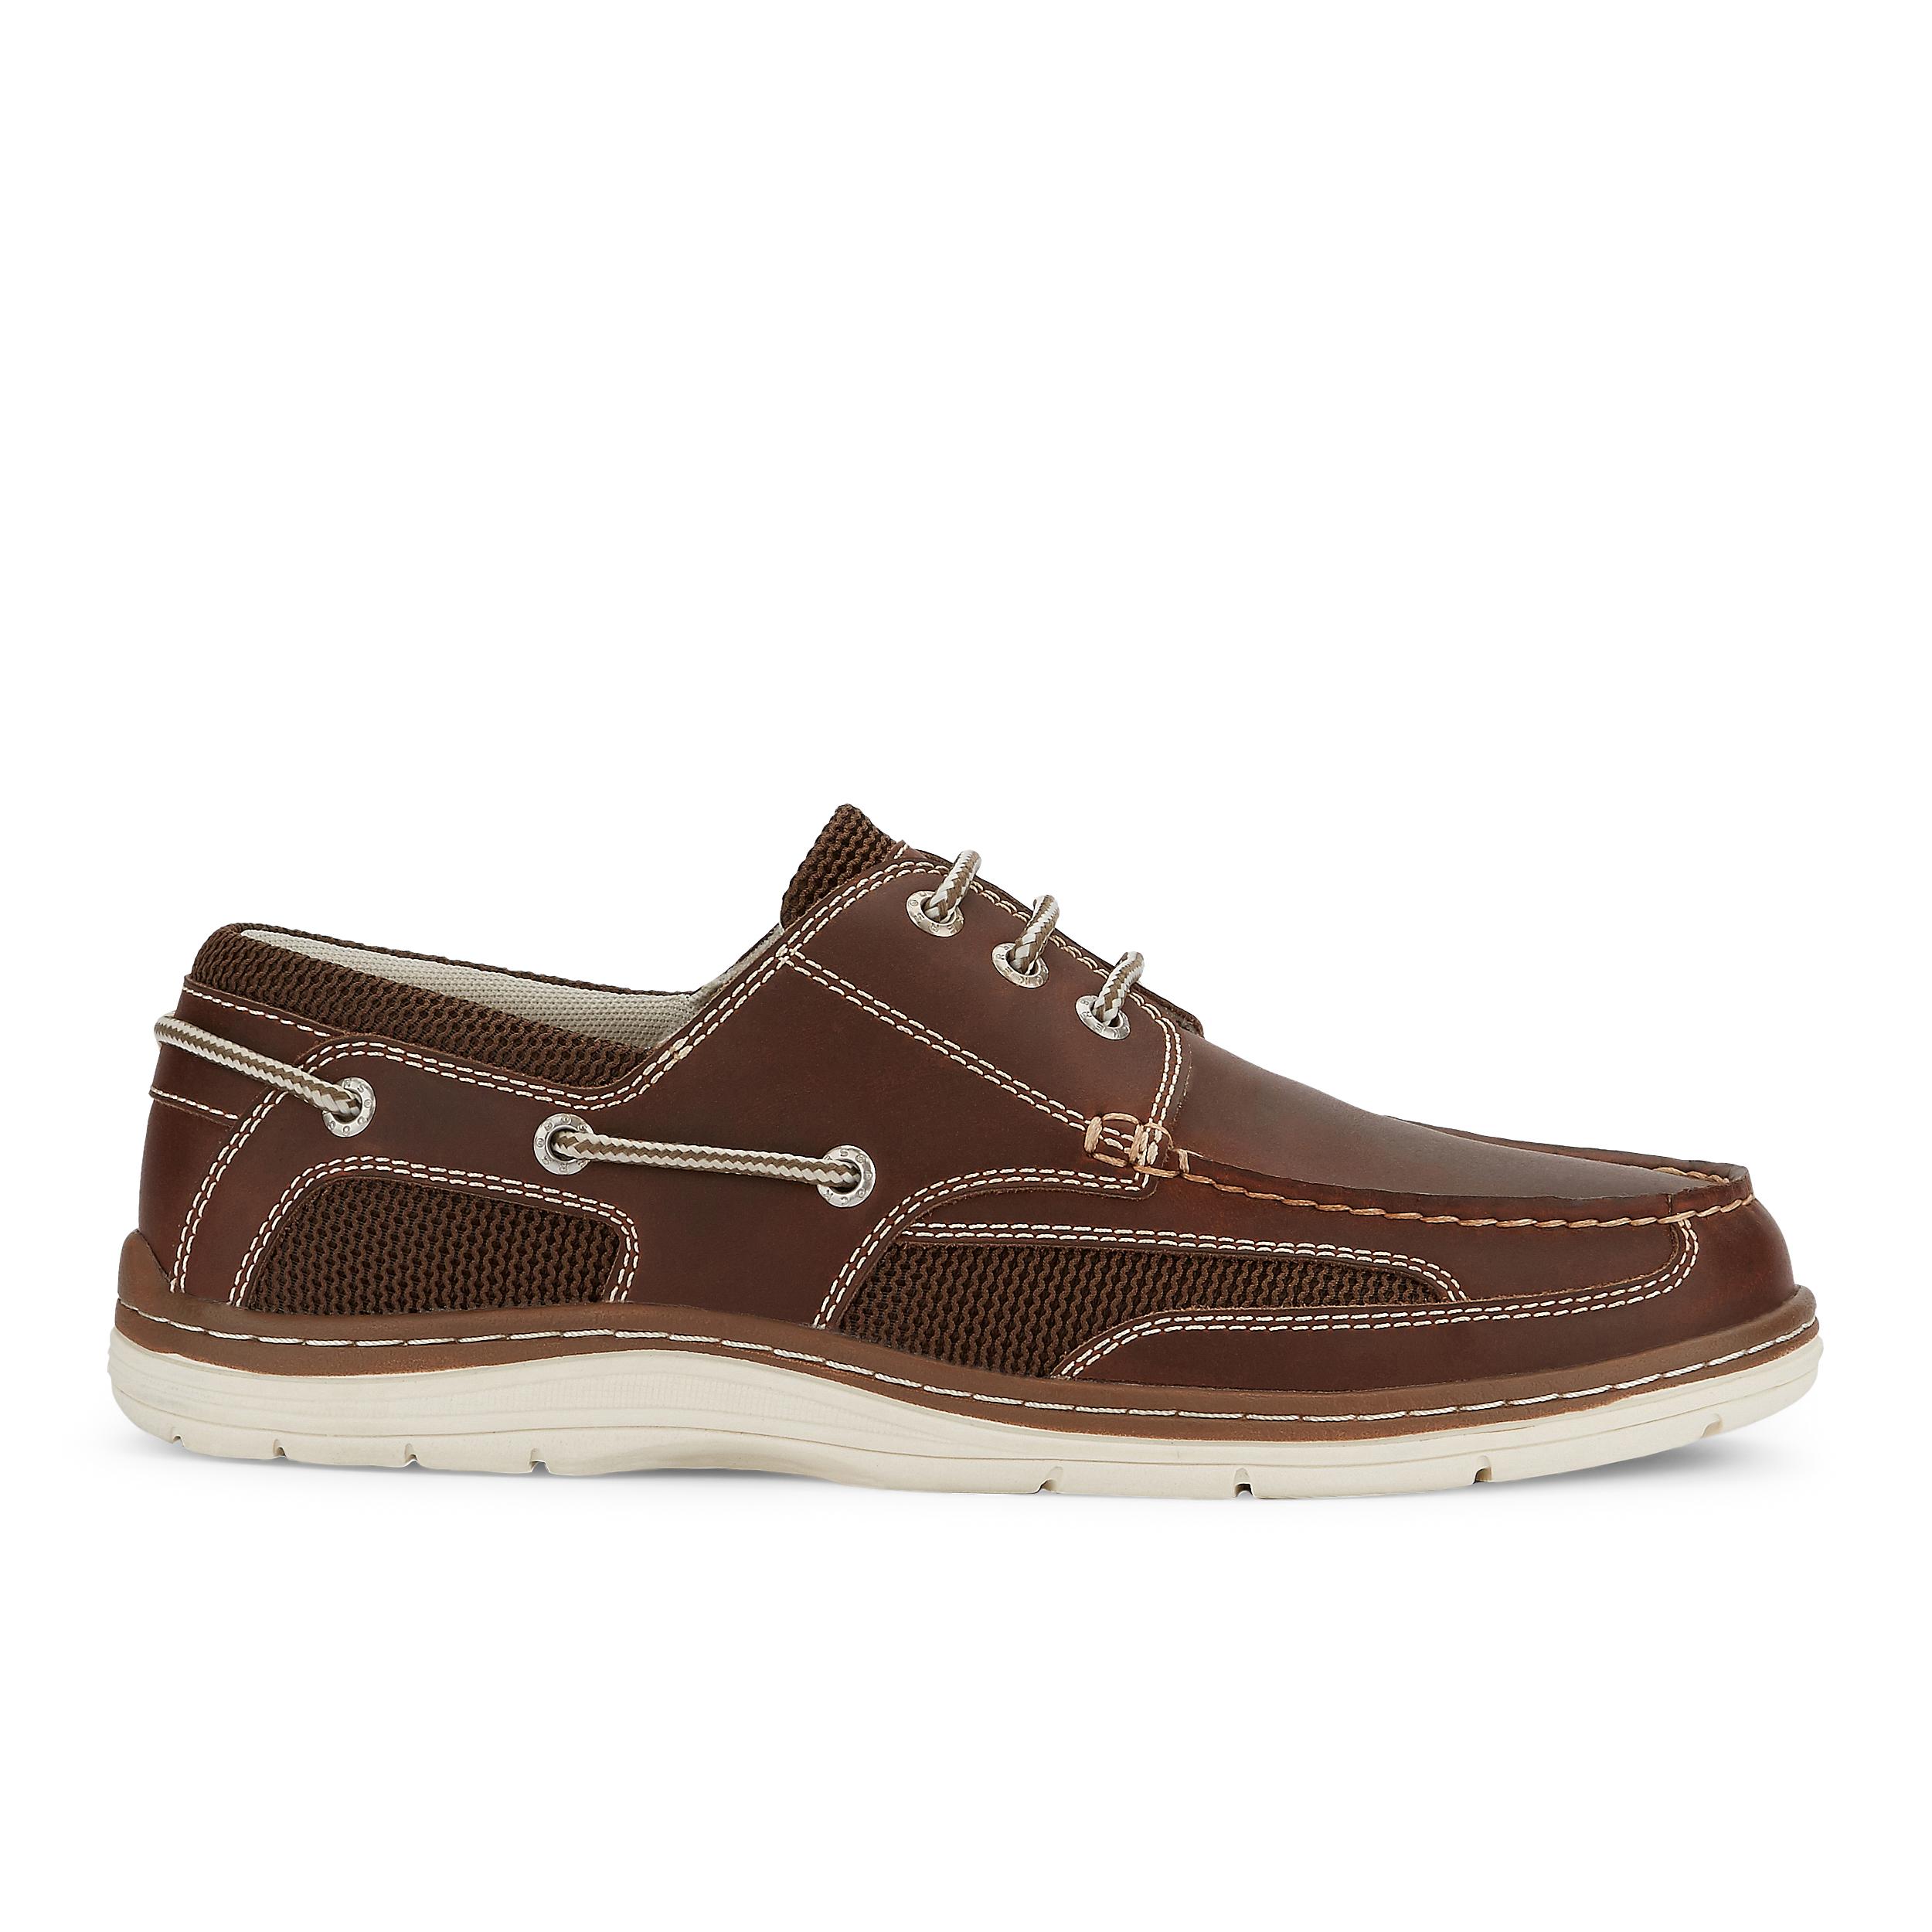 Dockers-Mens-Lakeport-Genuine-Leather-Casual-Rubber-Sole-Sport-Boat-Shoe thumbnail 24